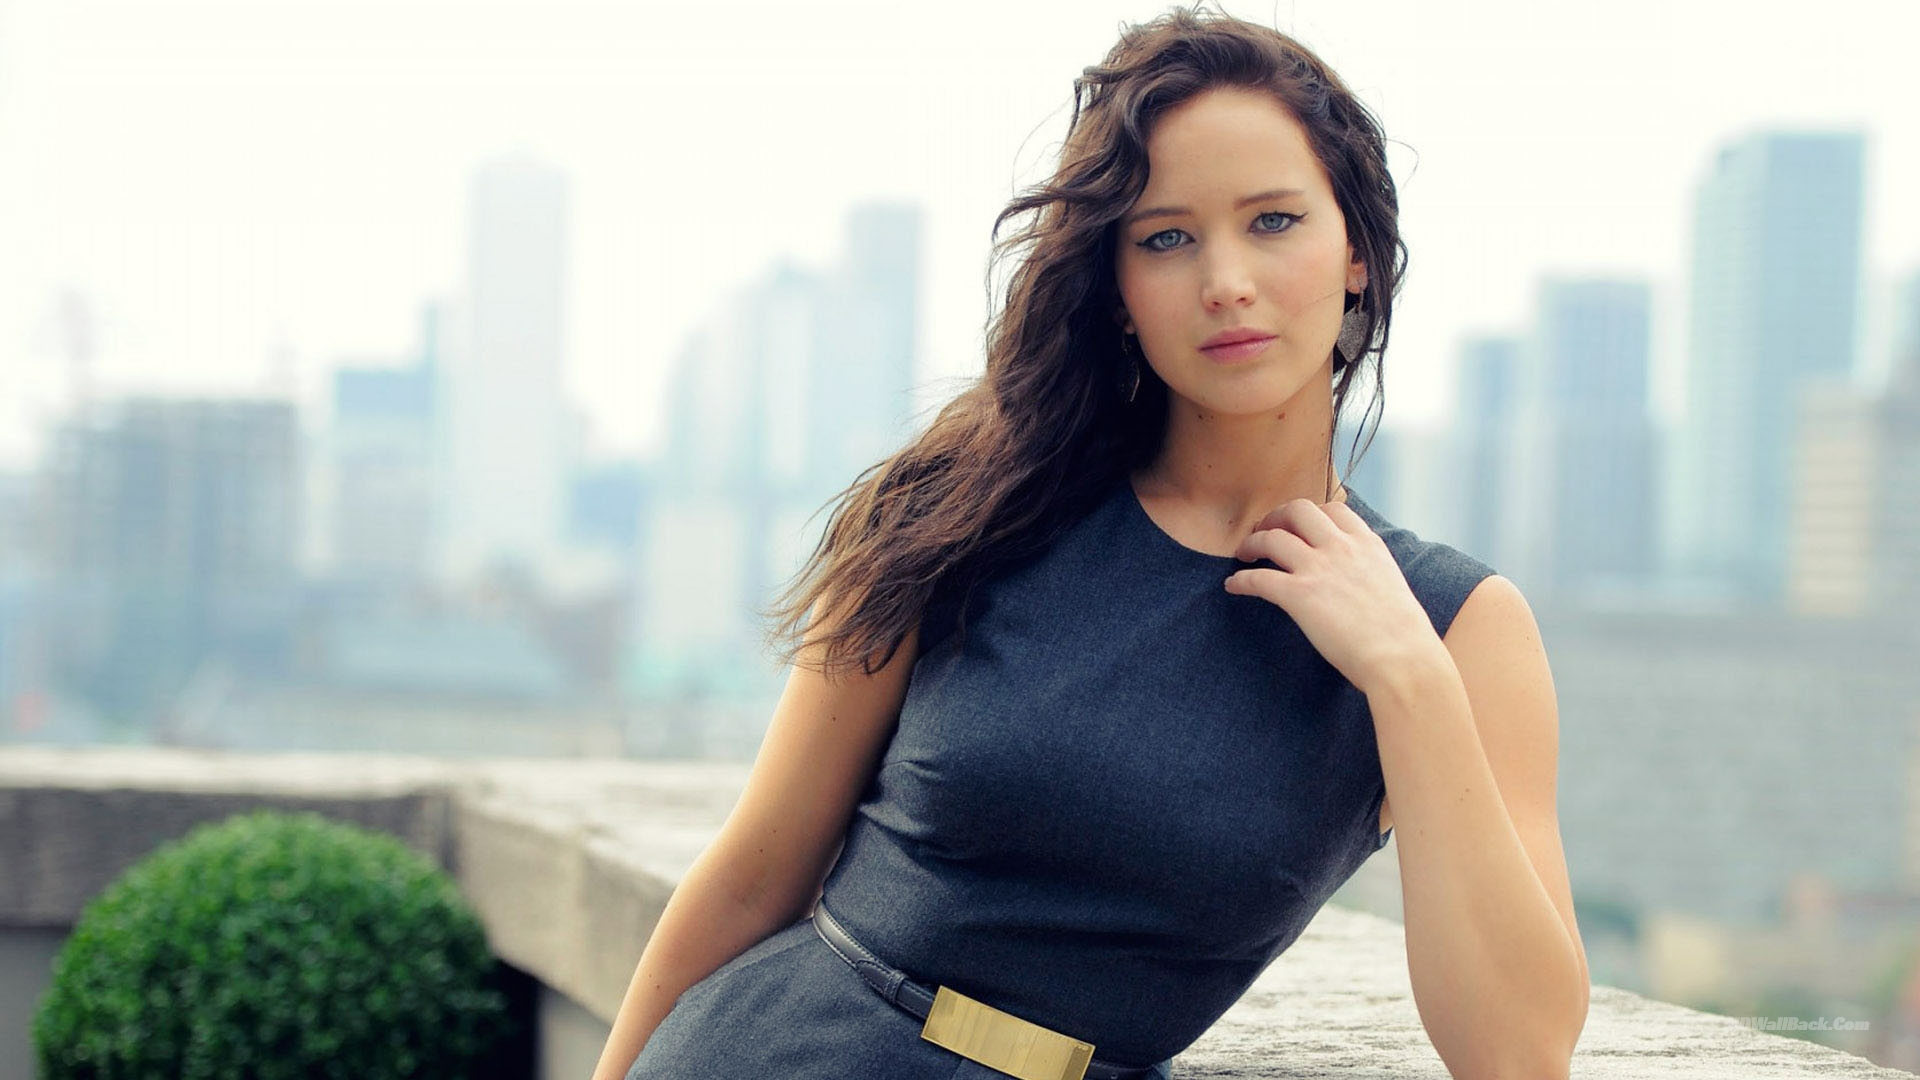 jennifer lawrence hd wallpaper